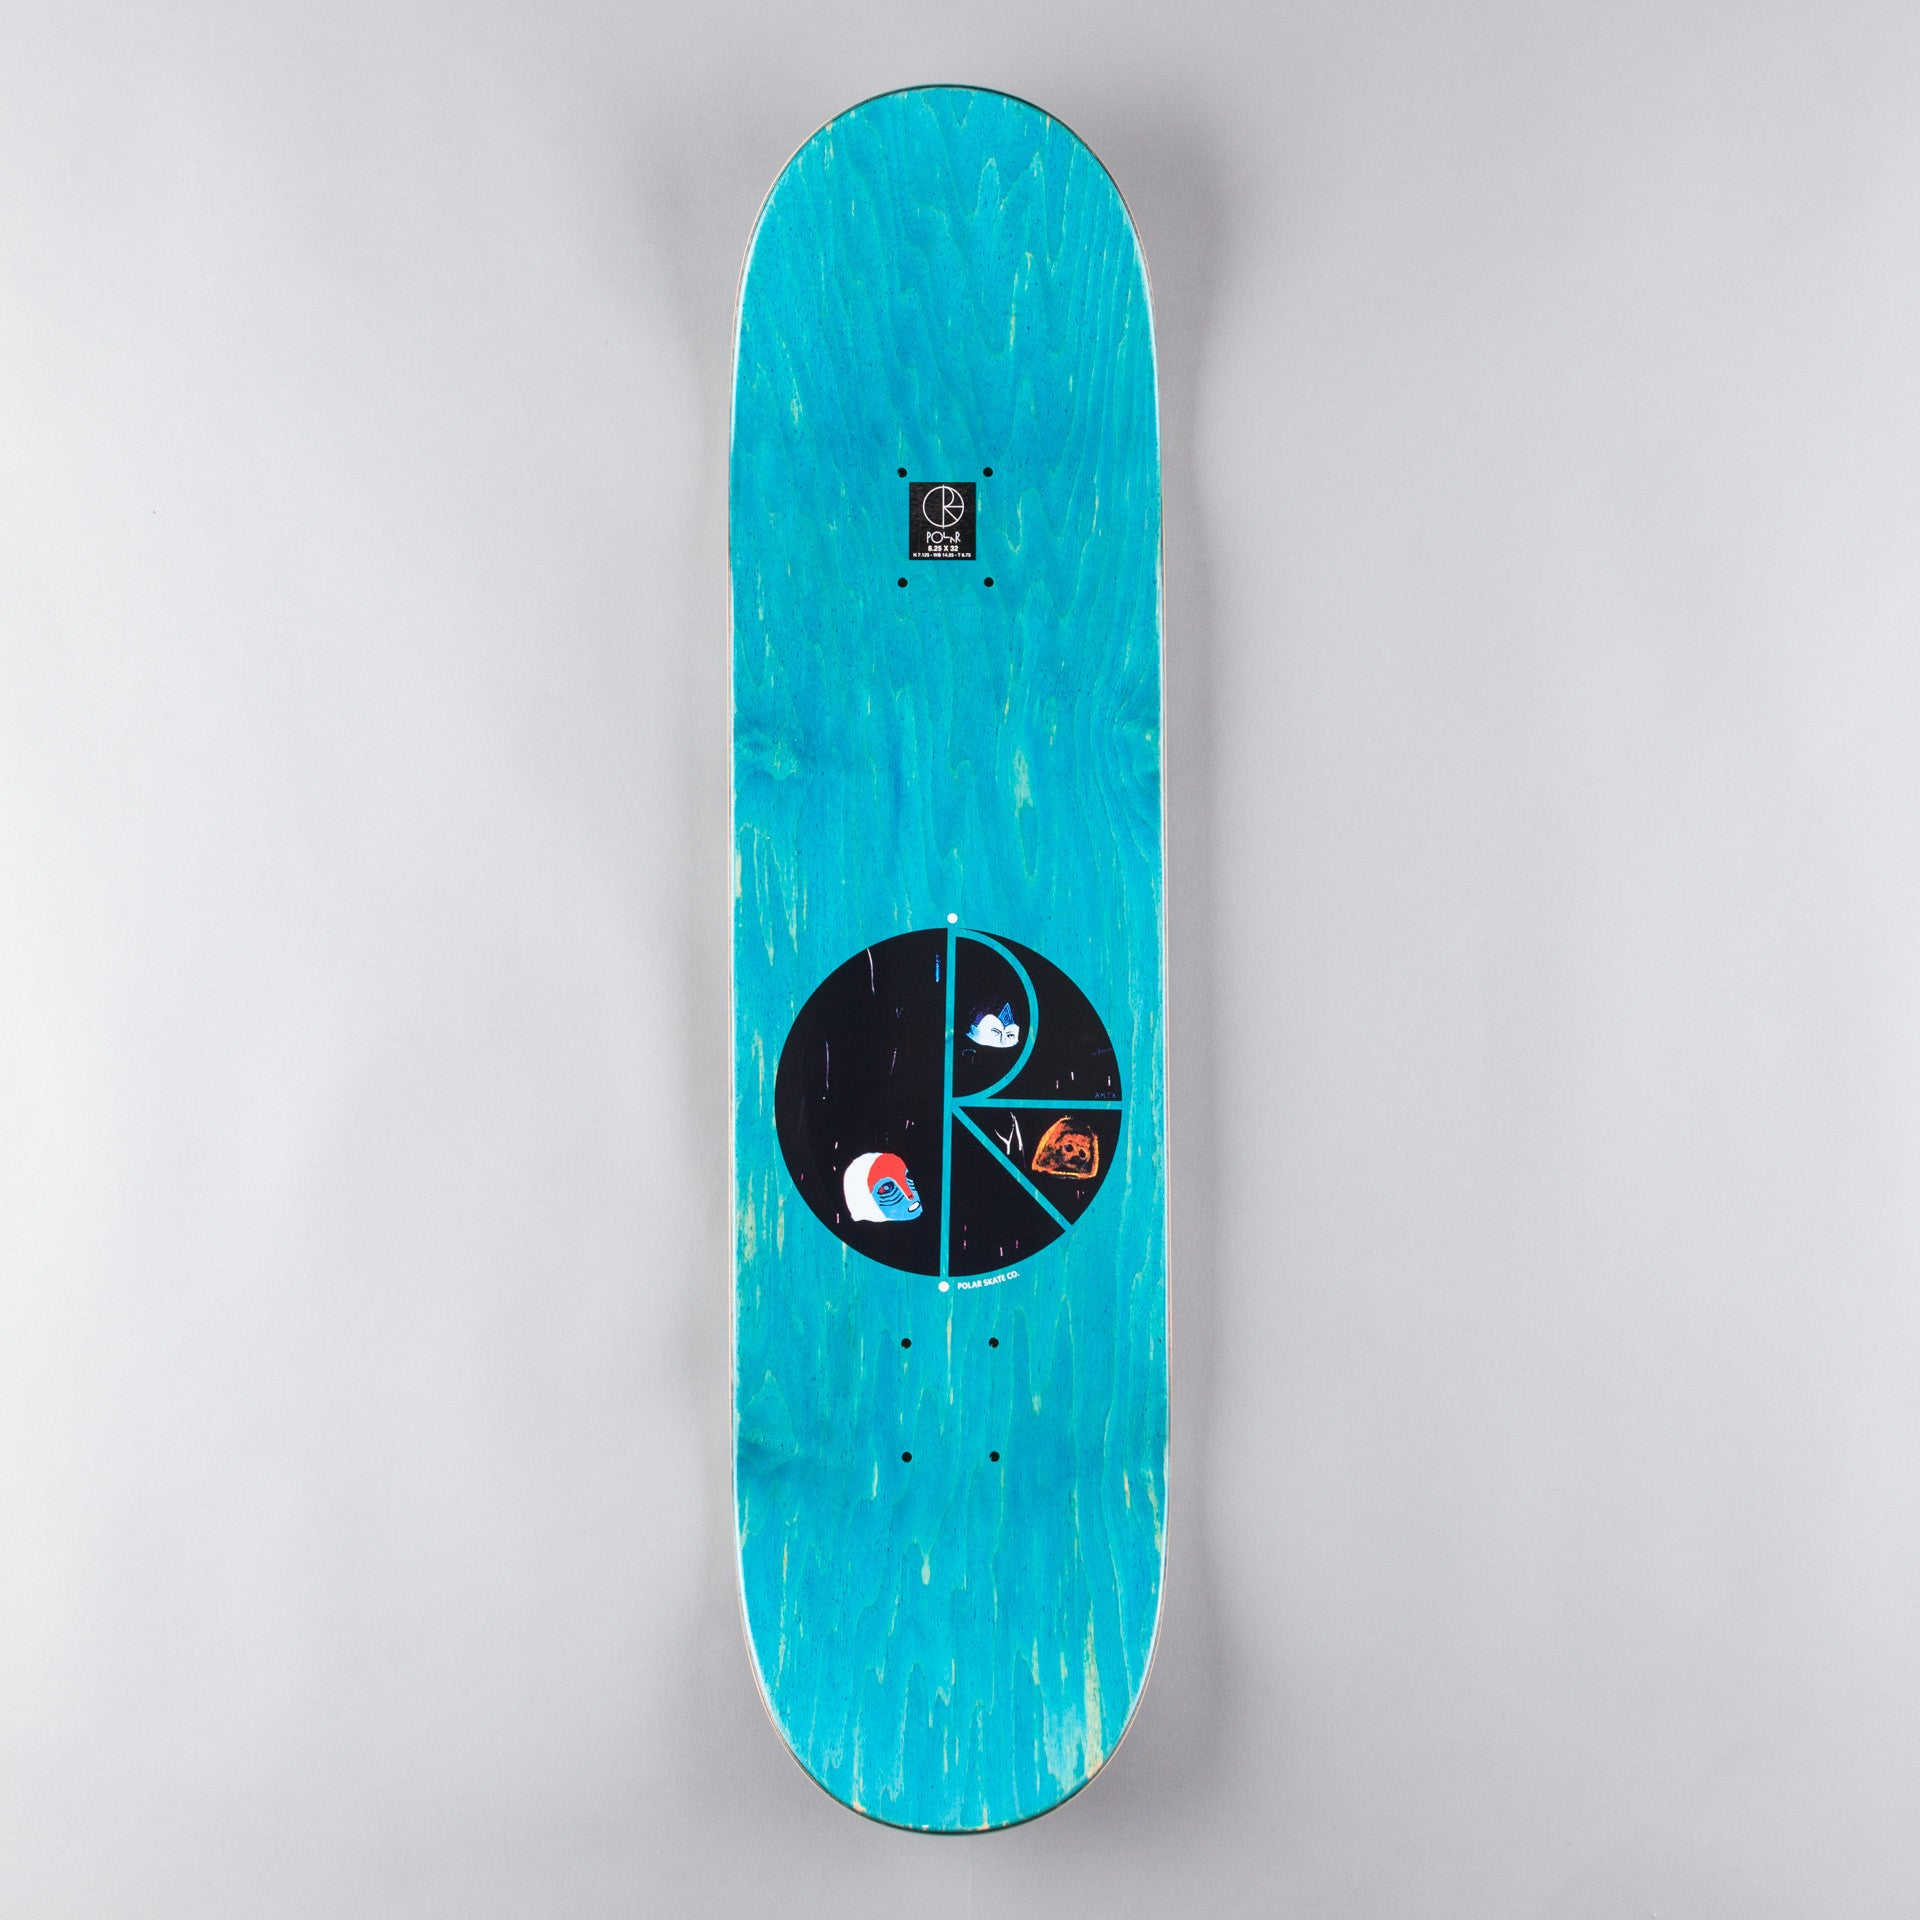 Polar x AMTK Edge of Camp Deck - 8.25""